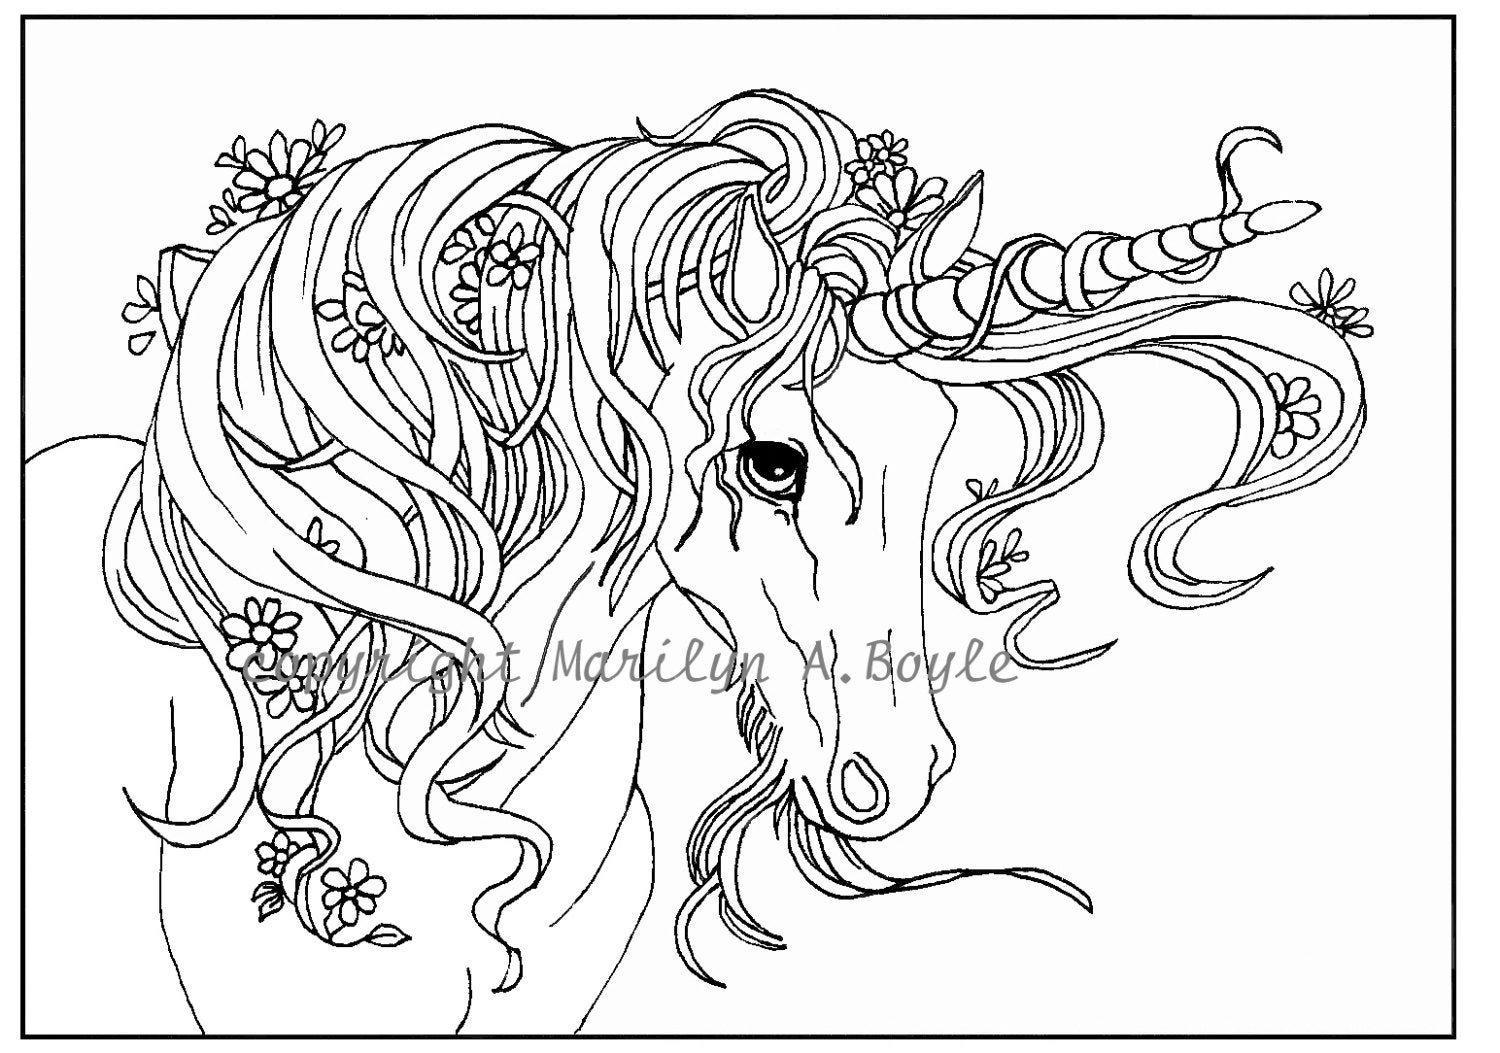 coloring page unicorn adult coloring page digital download unicorn flowers unicorn coloring page